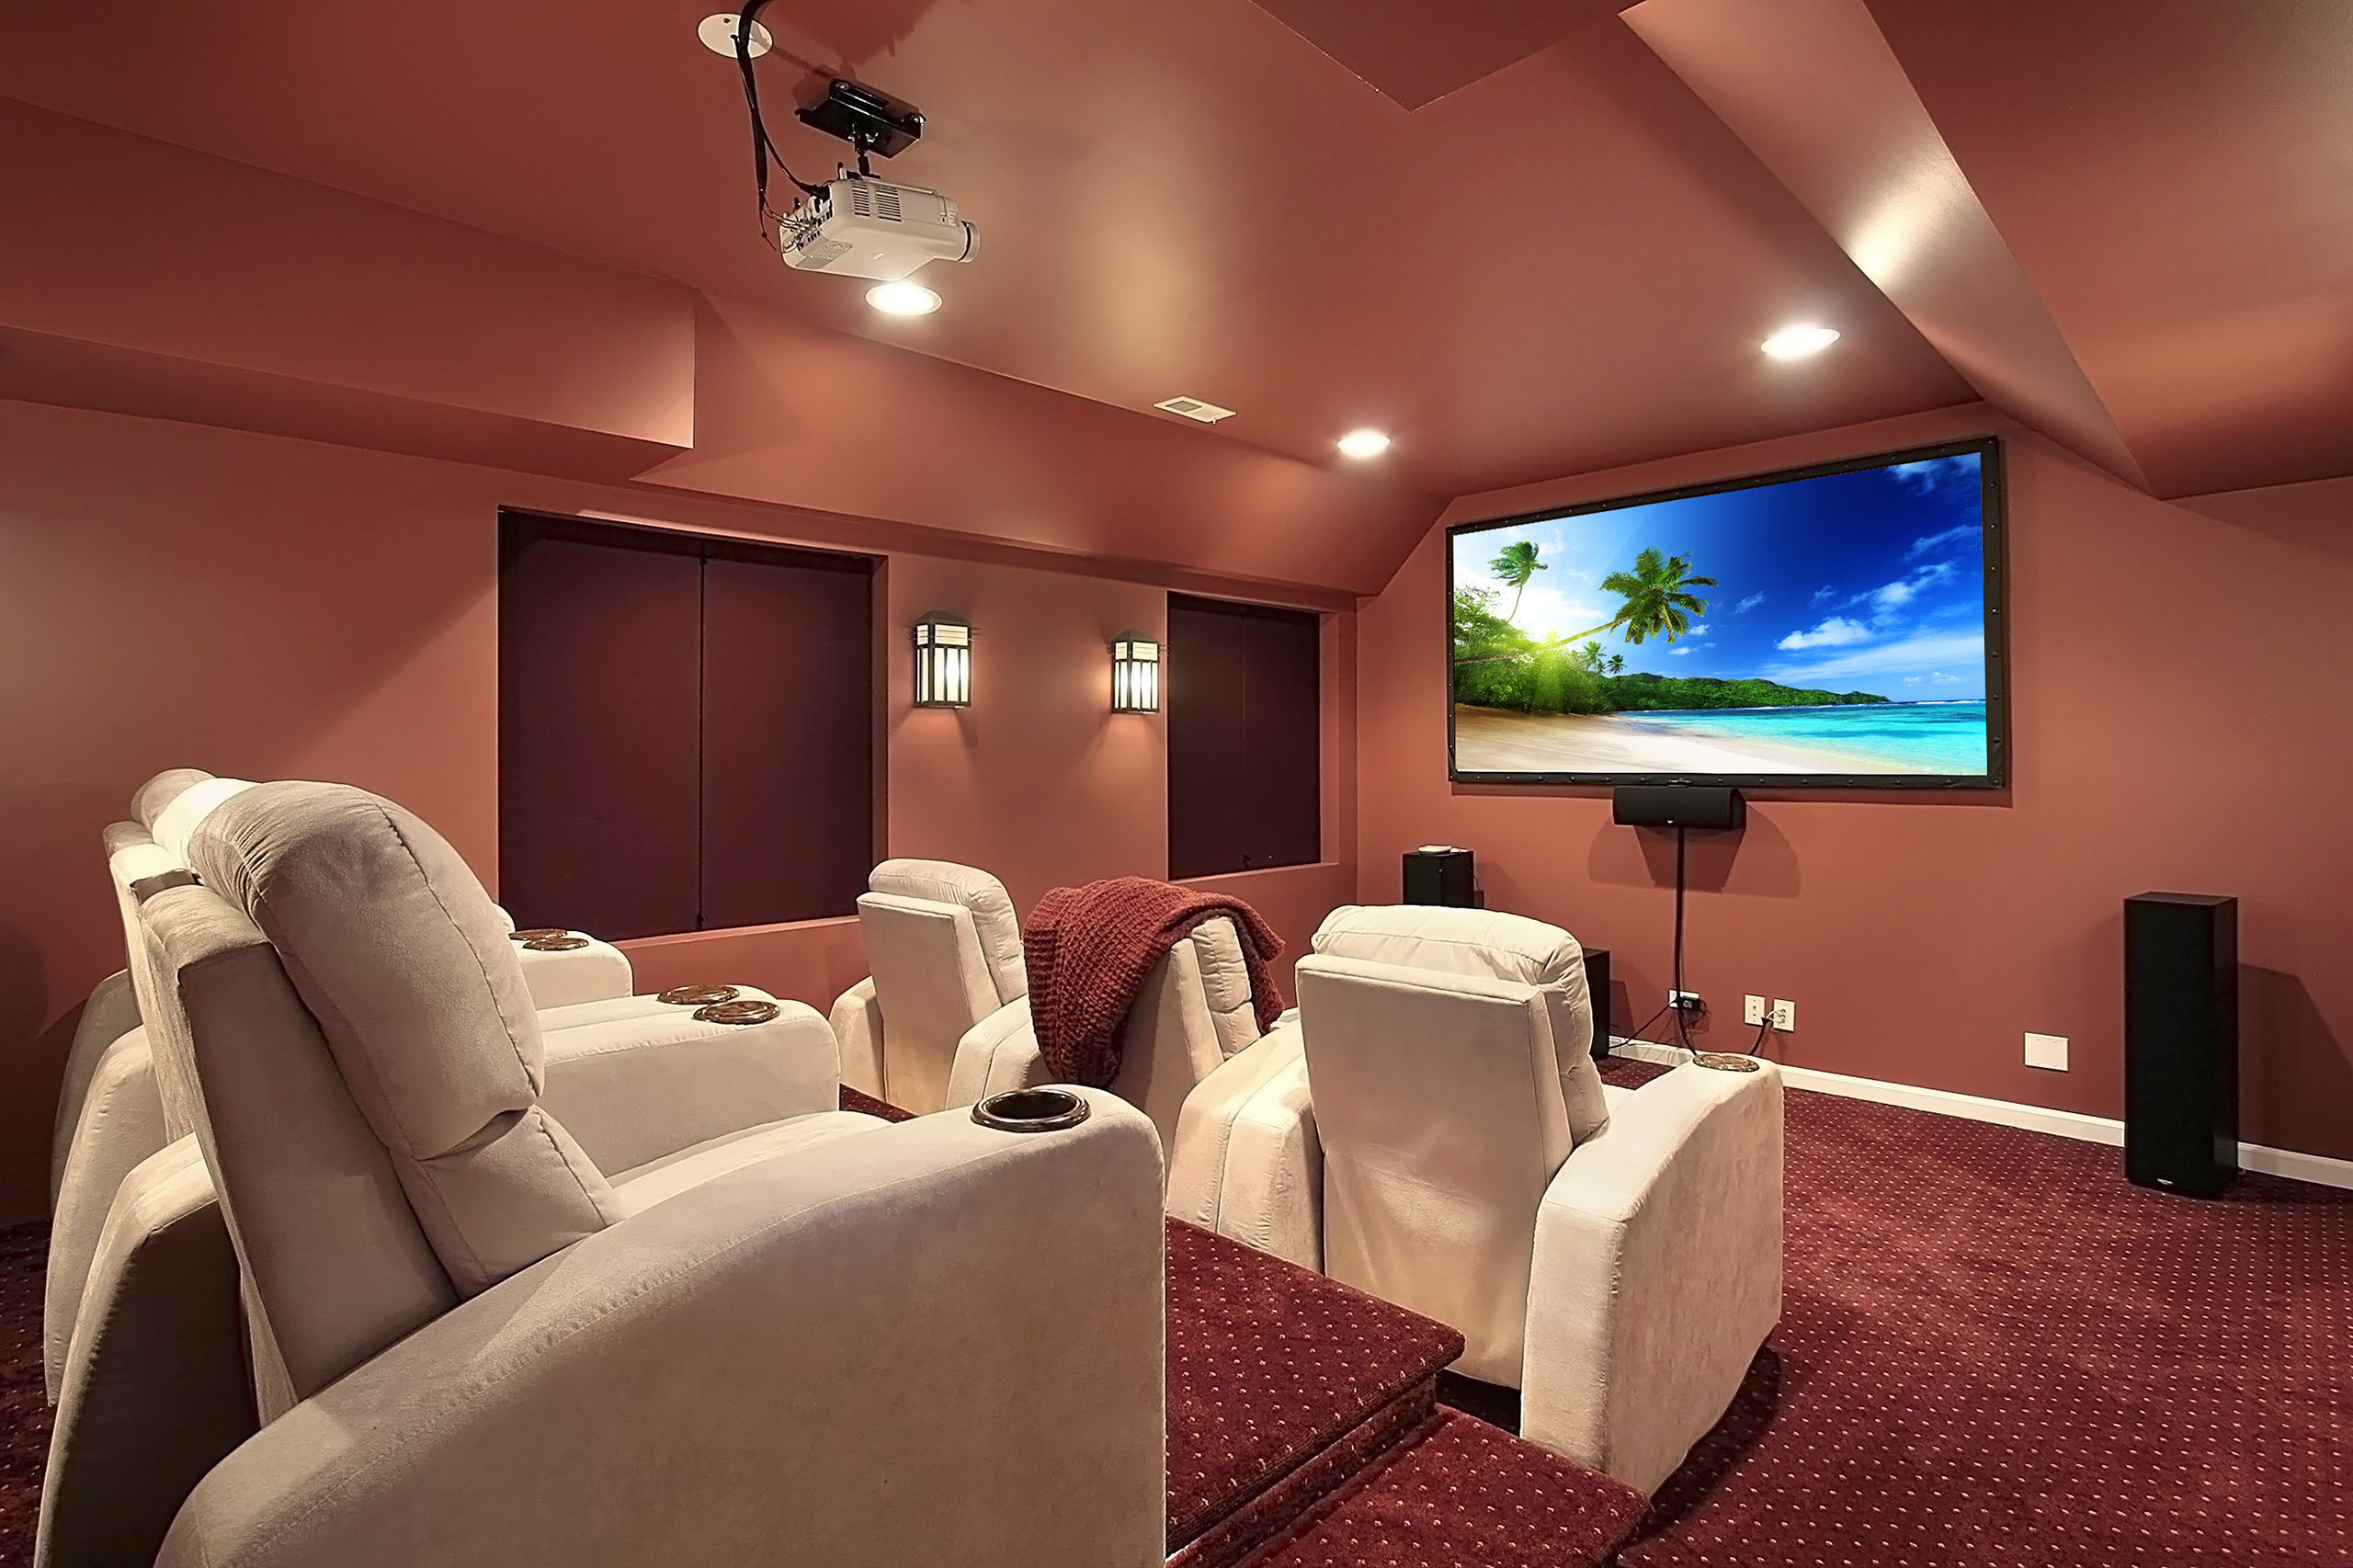 Home Theater Room Home Theater Installation Houston Home Cinema Installers